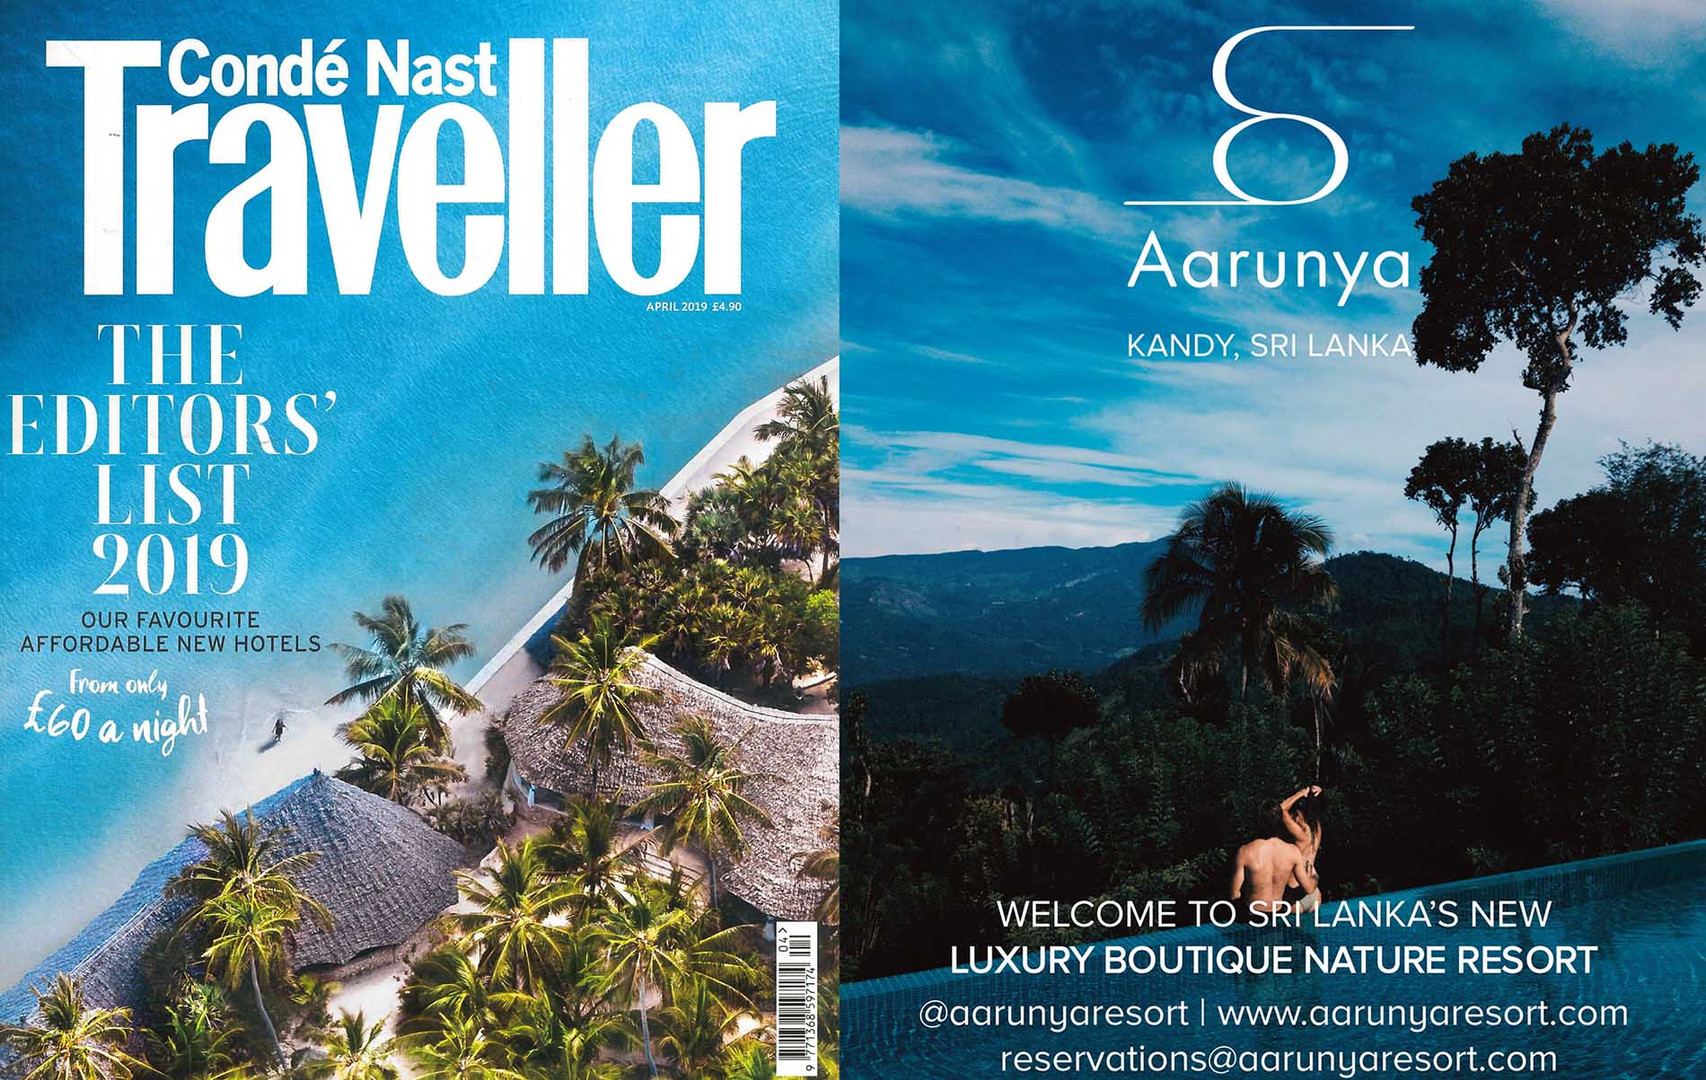 Conde Nast Traveller April 2019